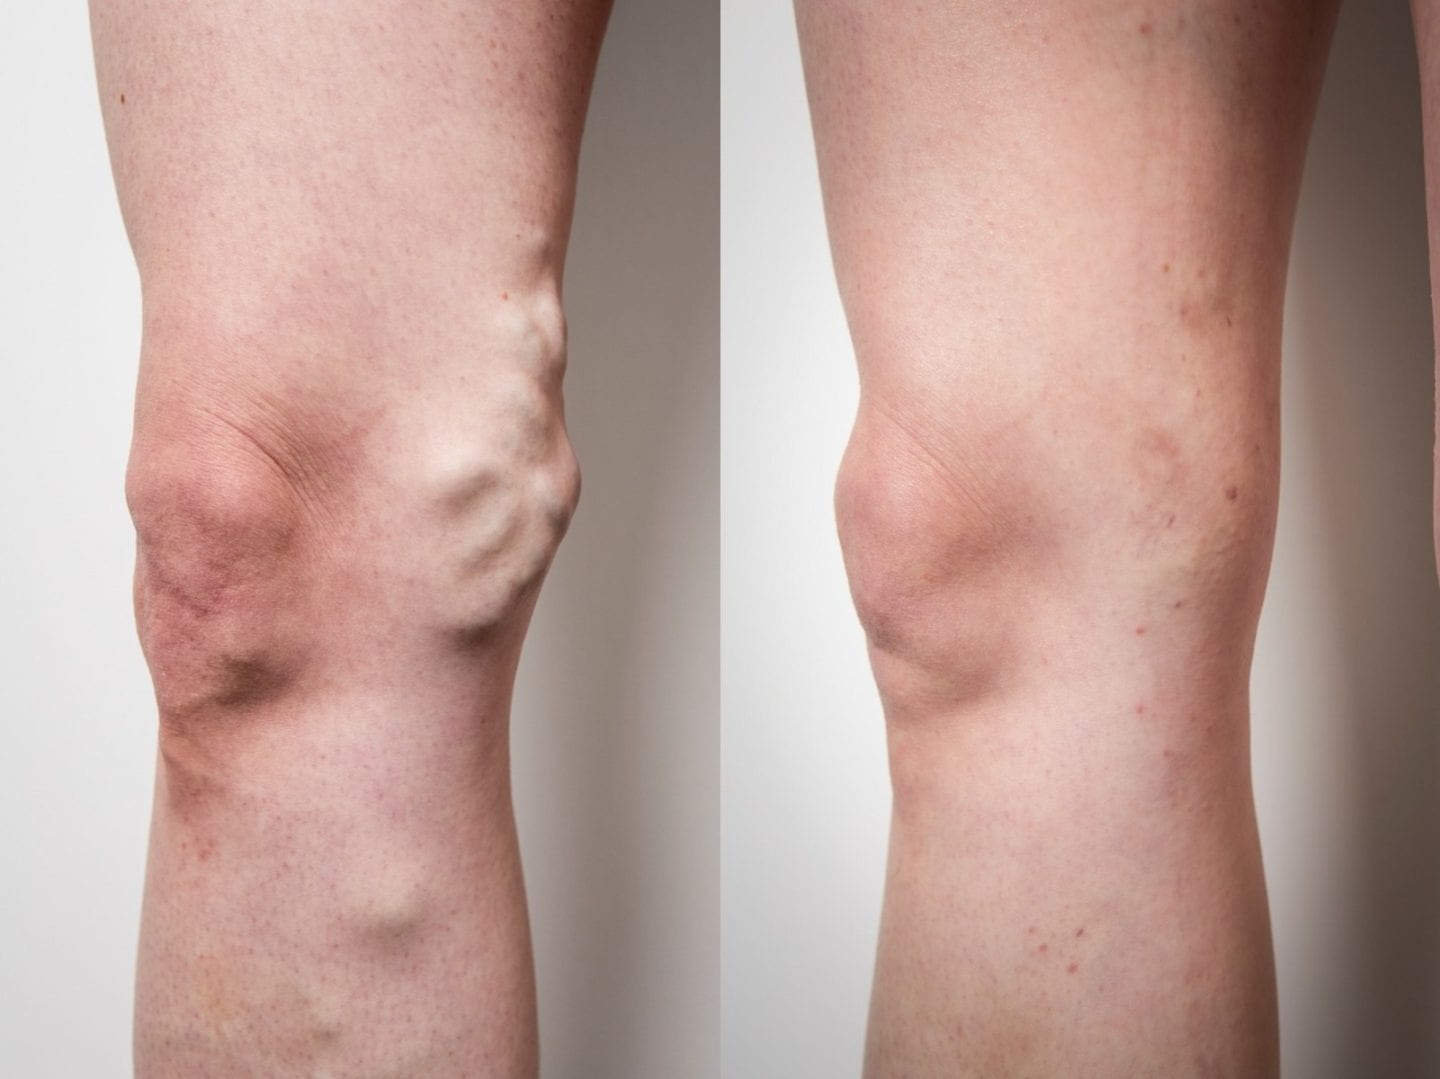 Varicose veins before treatment and 6 weeks after treatment